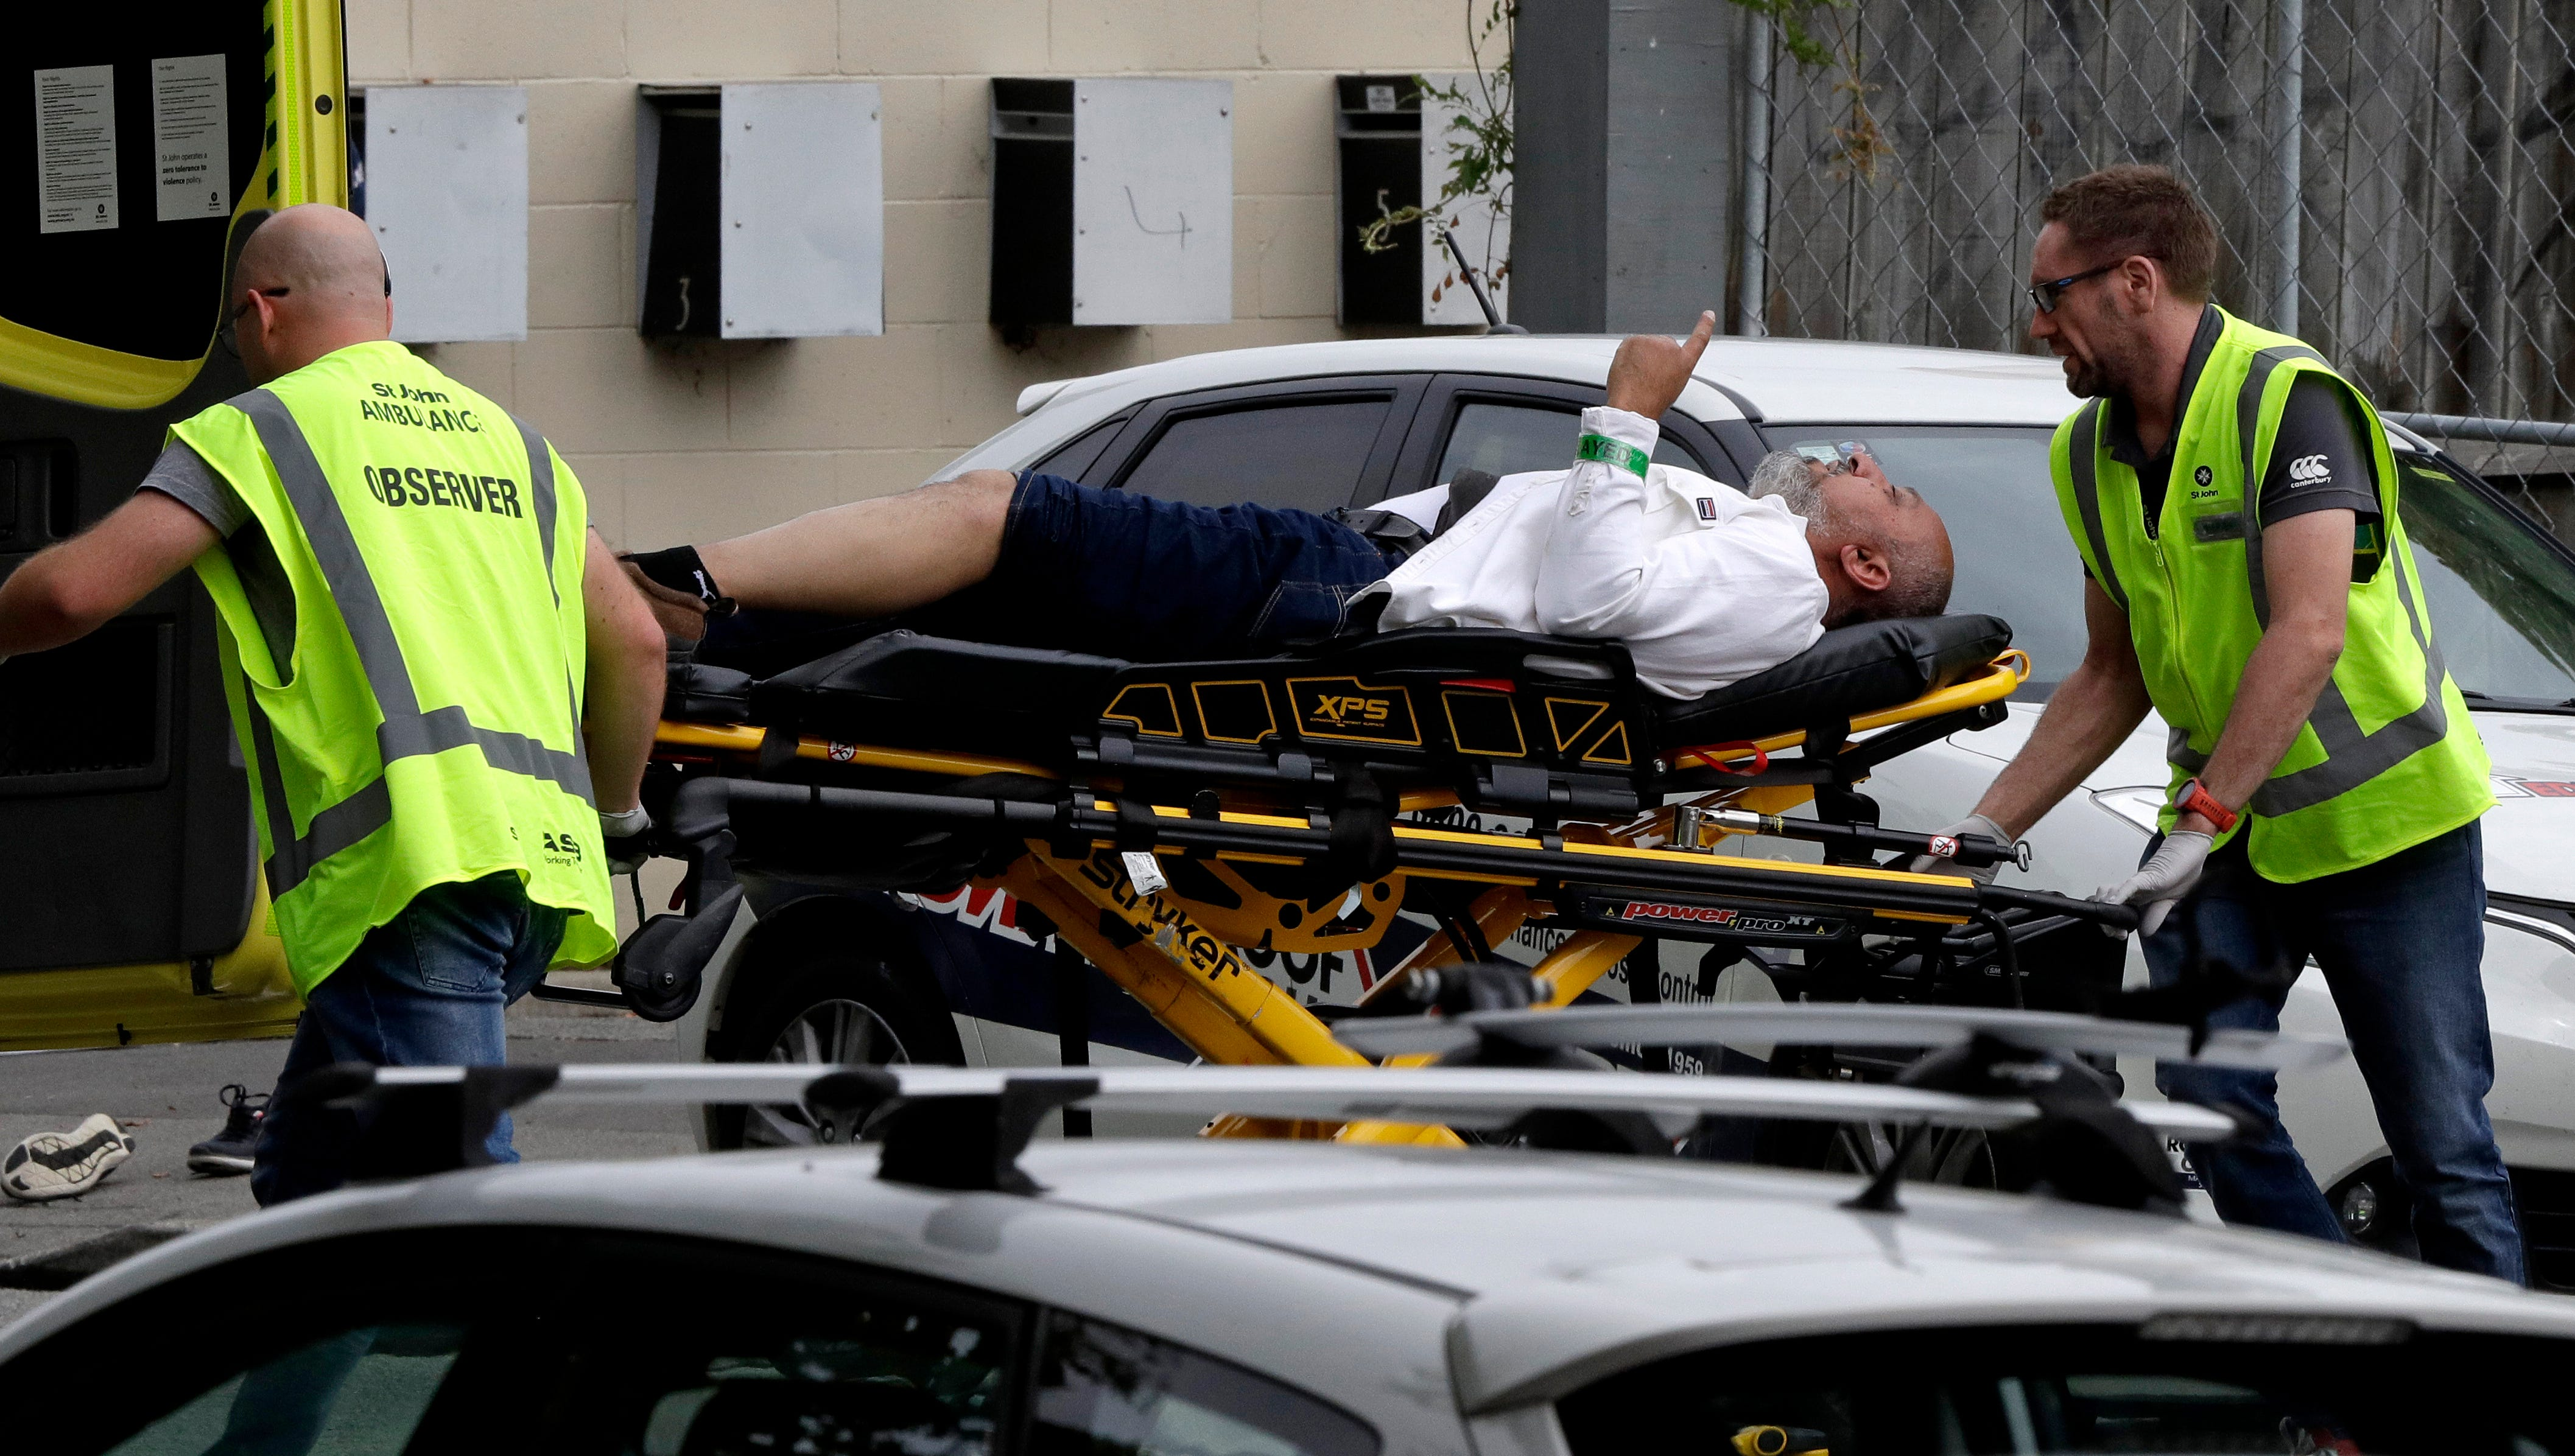 New Zealand Mosque Shooting Facebook: New Zealand Shooting: Dylann Roof Inspired Shooter